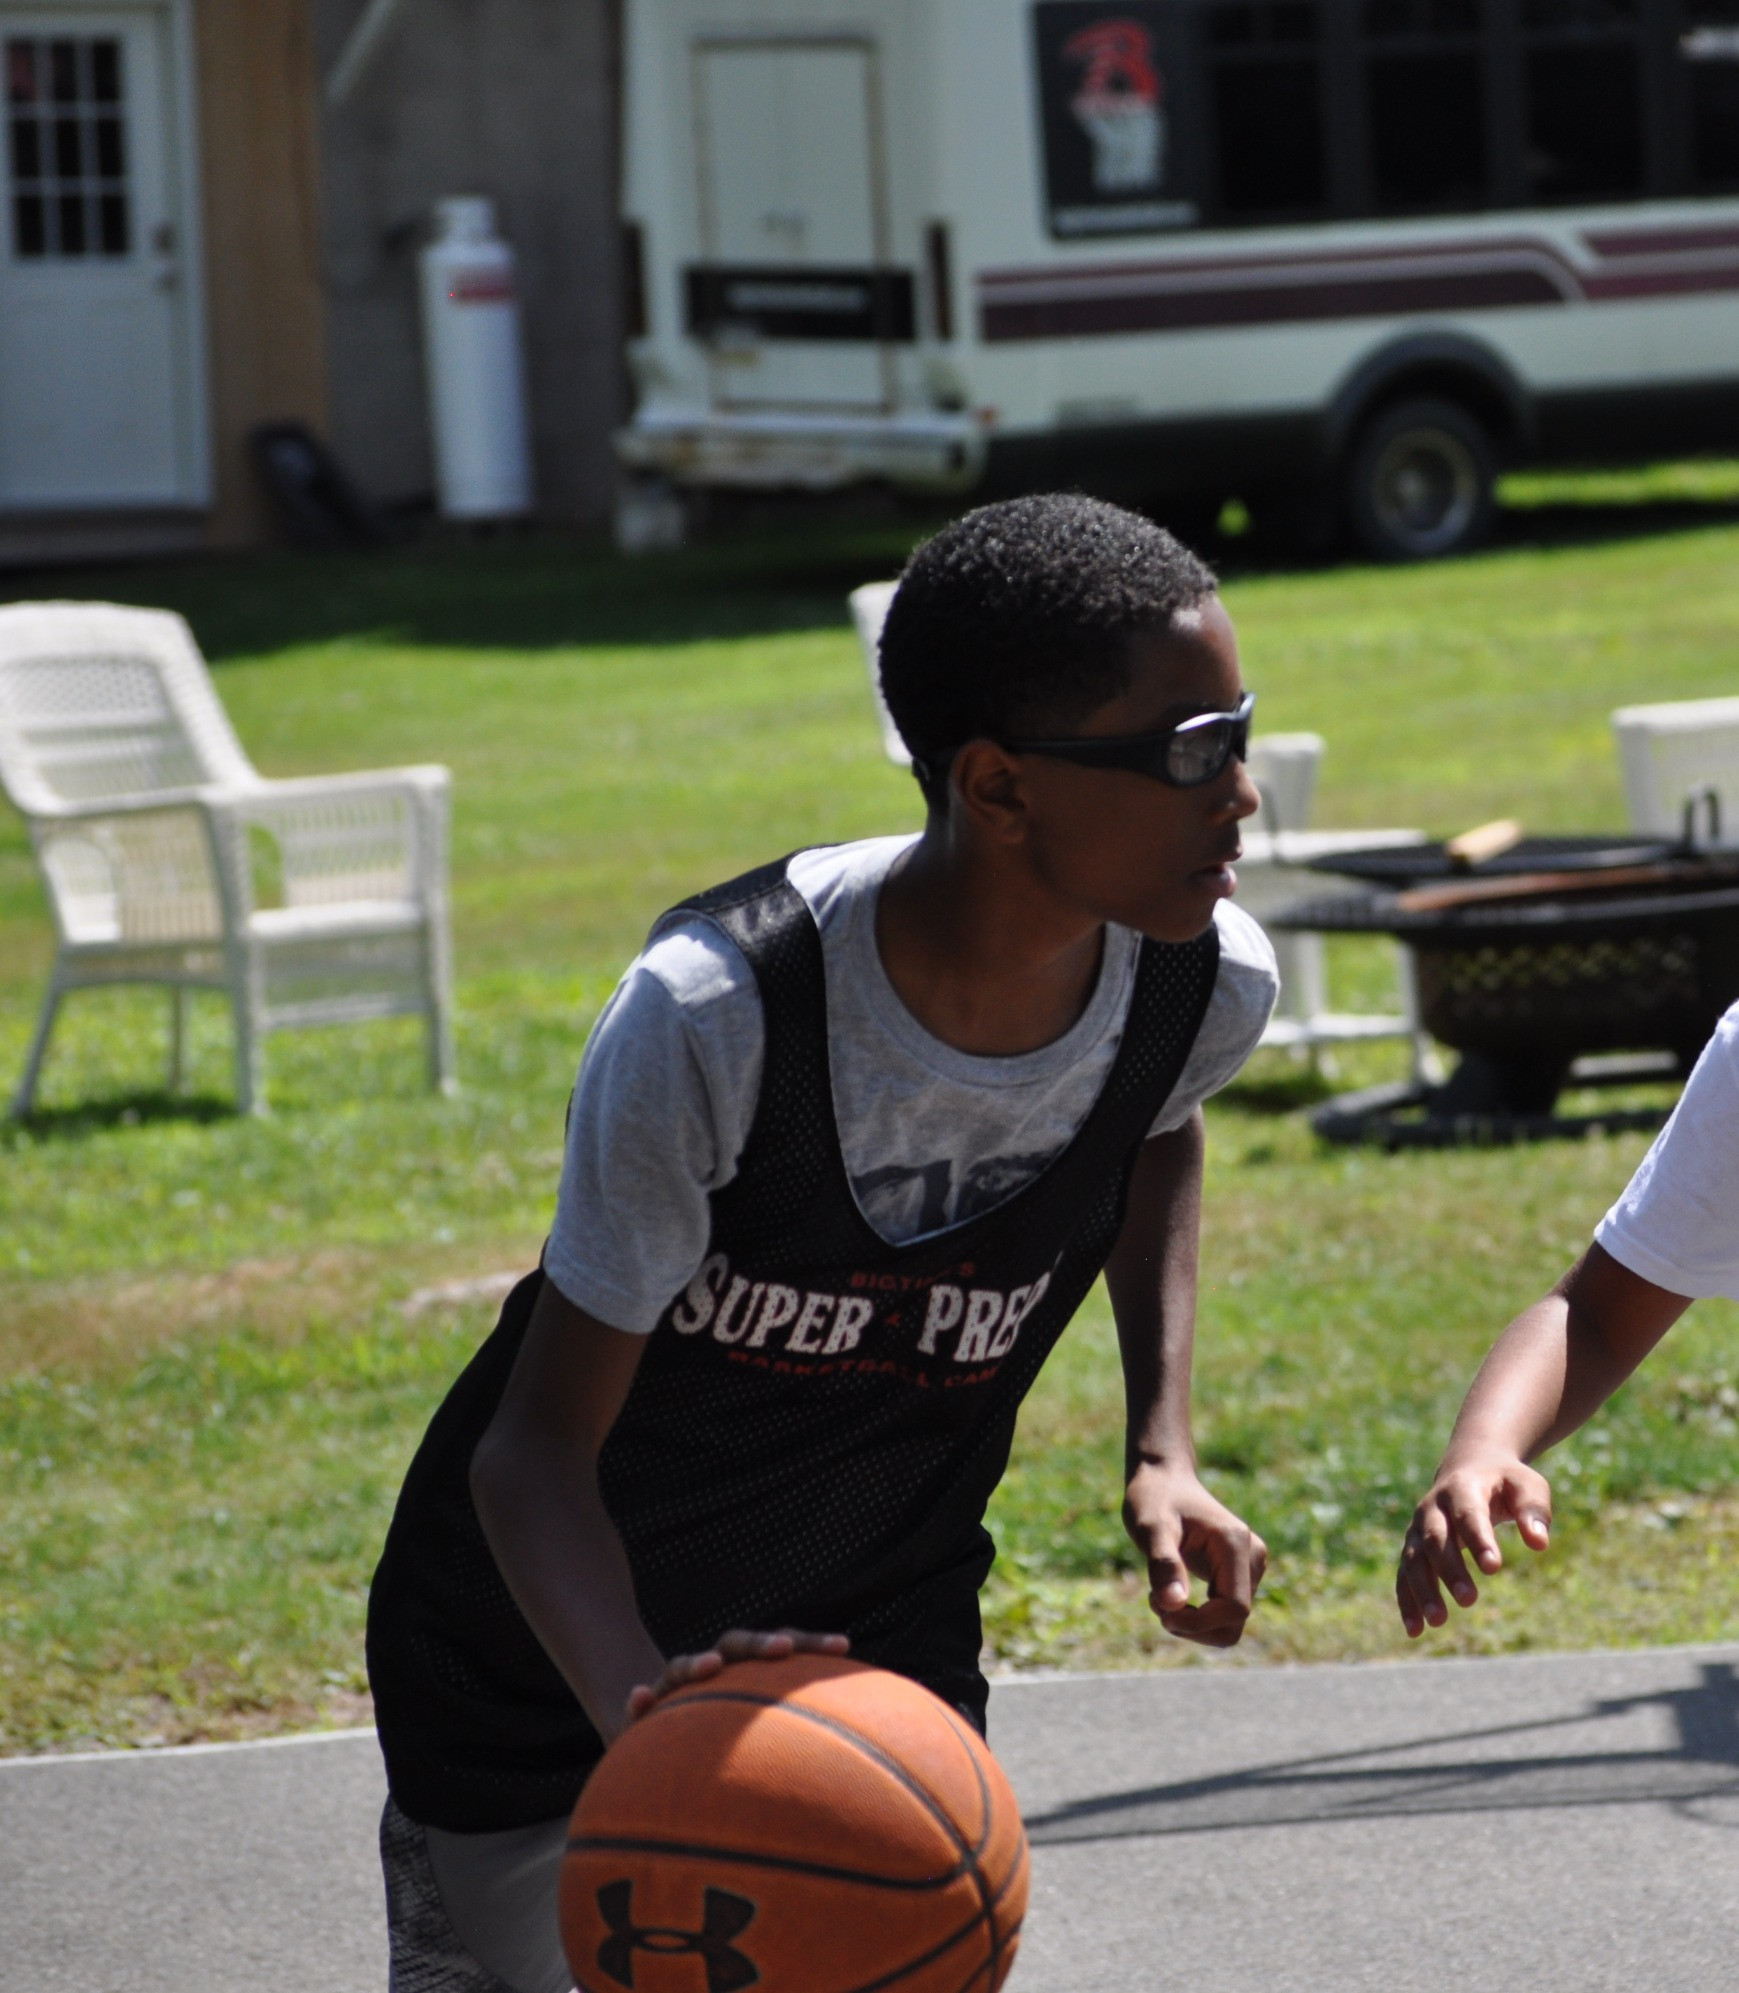 Point Guard Weekend